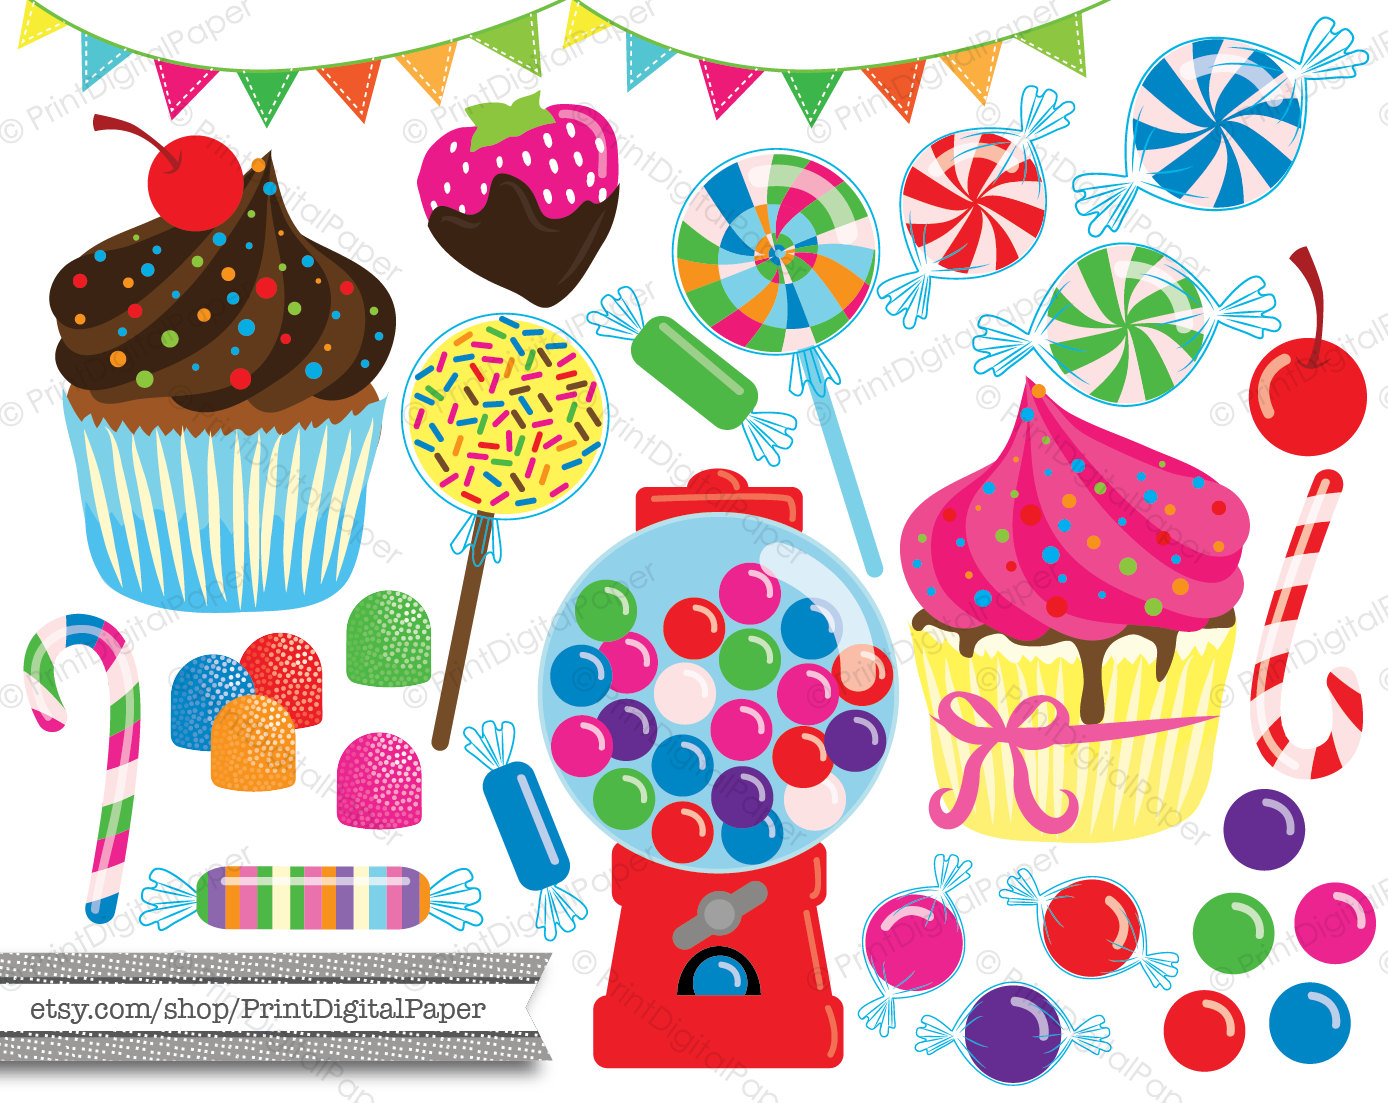 Candy Cane clipart lollipops Strawberry Candy Use Clipart colorful